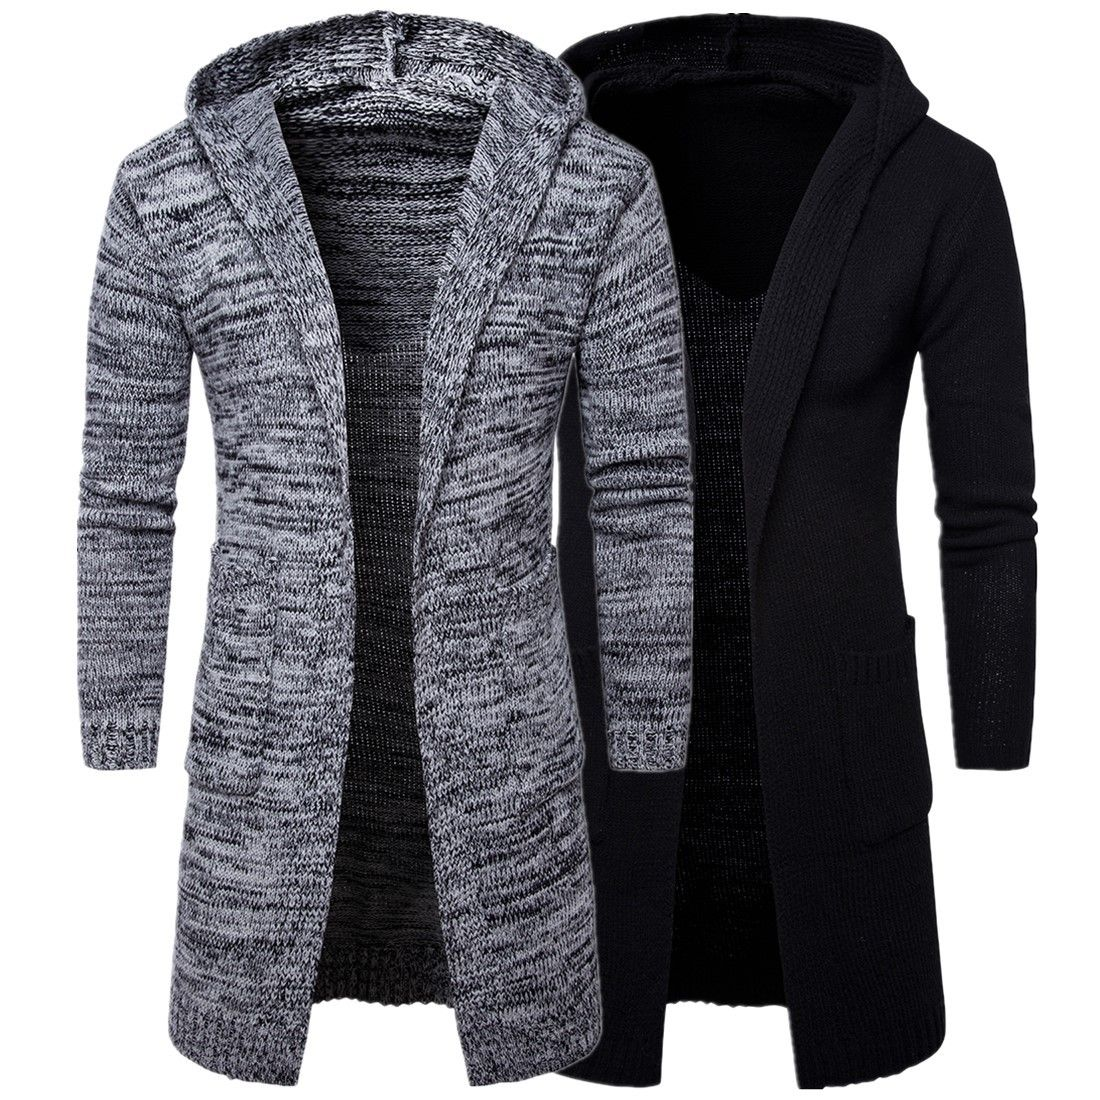 Men's Classic Knitted Hooded Cardigan 151340 | Hooded cardigan